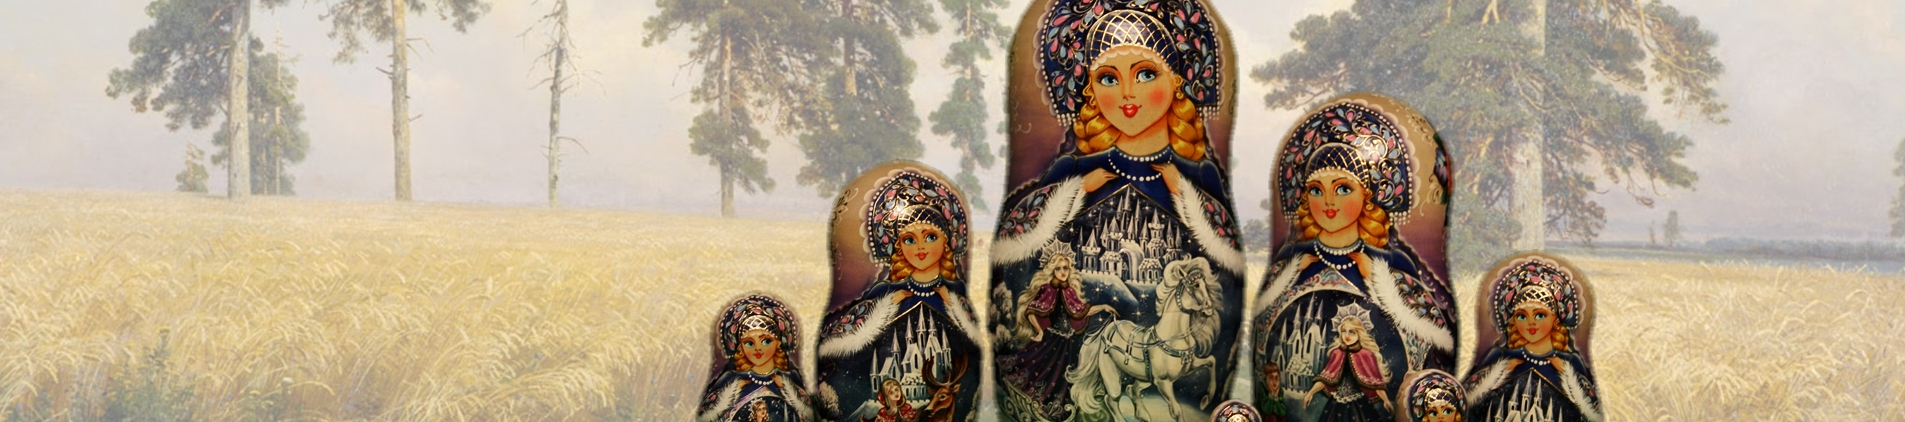 Exclusive Russian nesting dolls signed by the artists